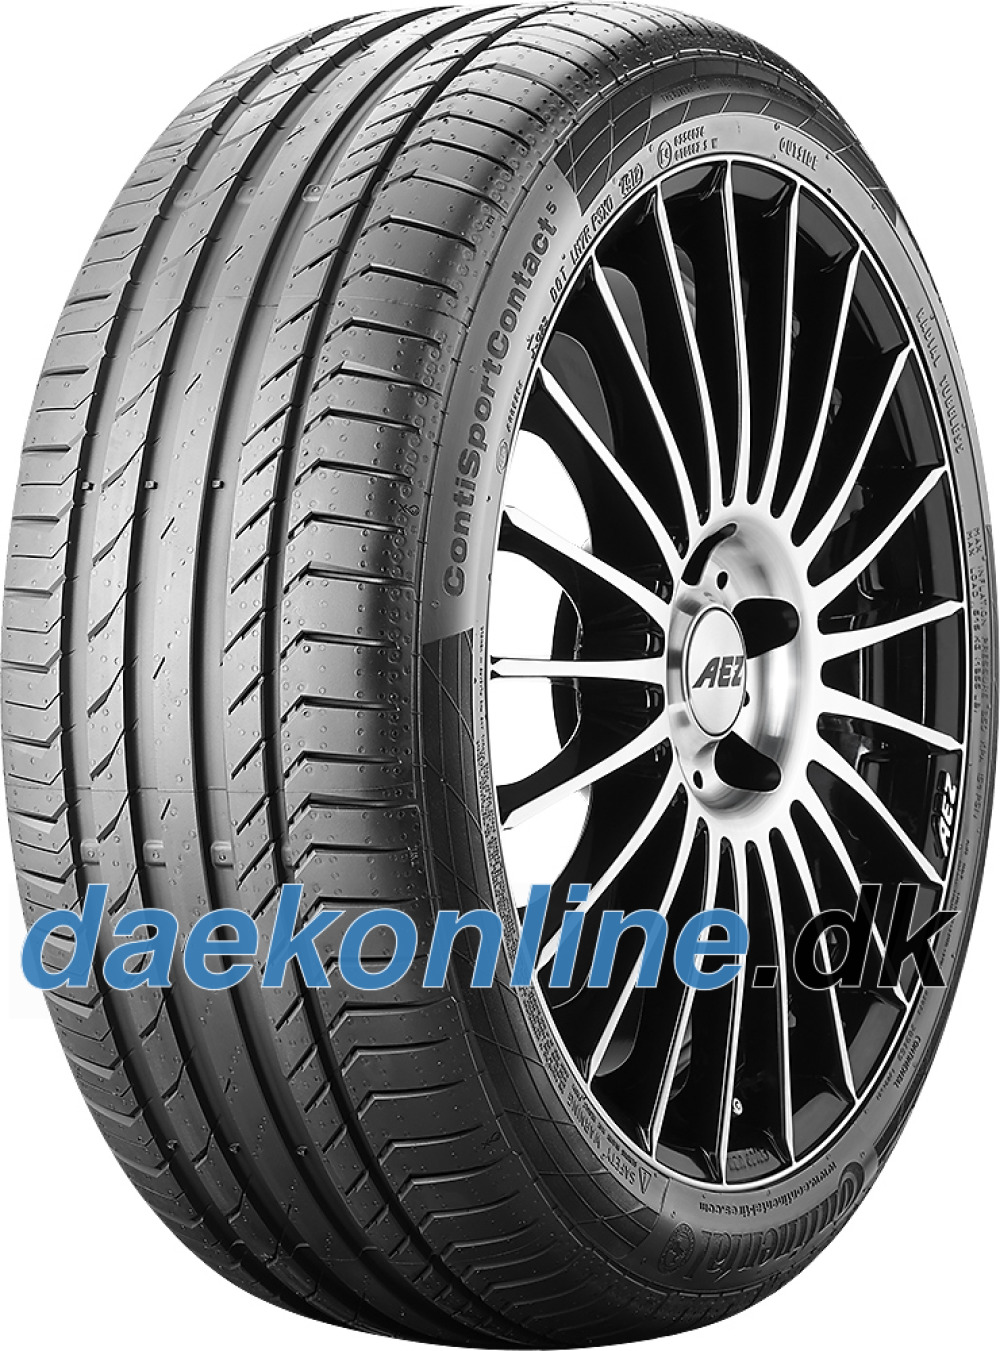 continental-contisportcontact-5-24540-r18-93y-med-falgribbe-ao